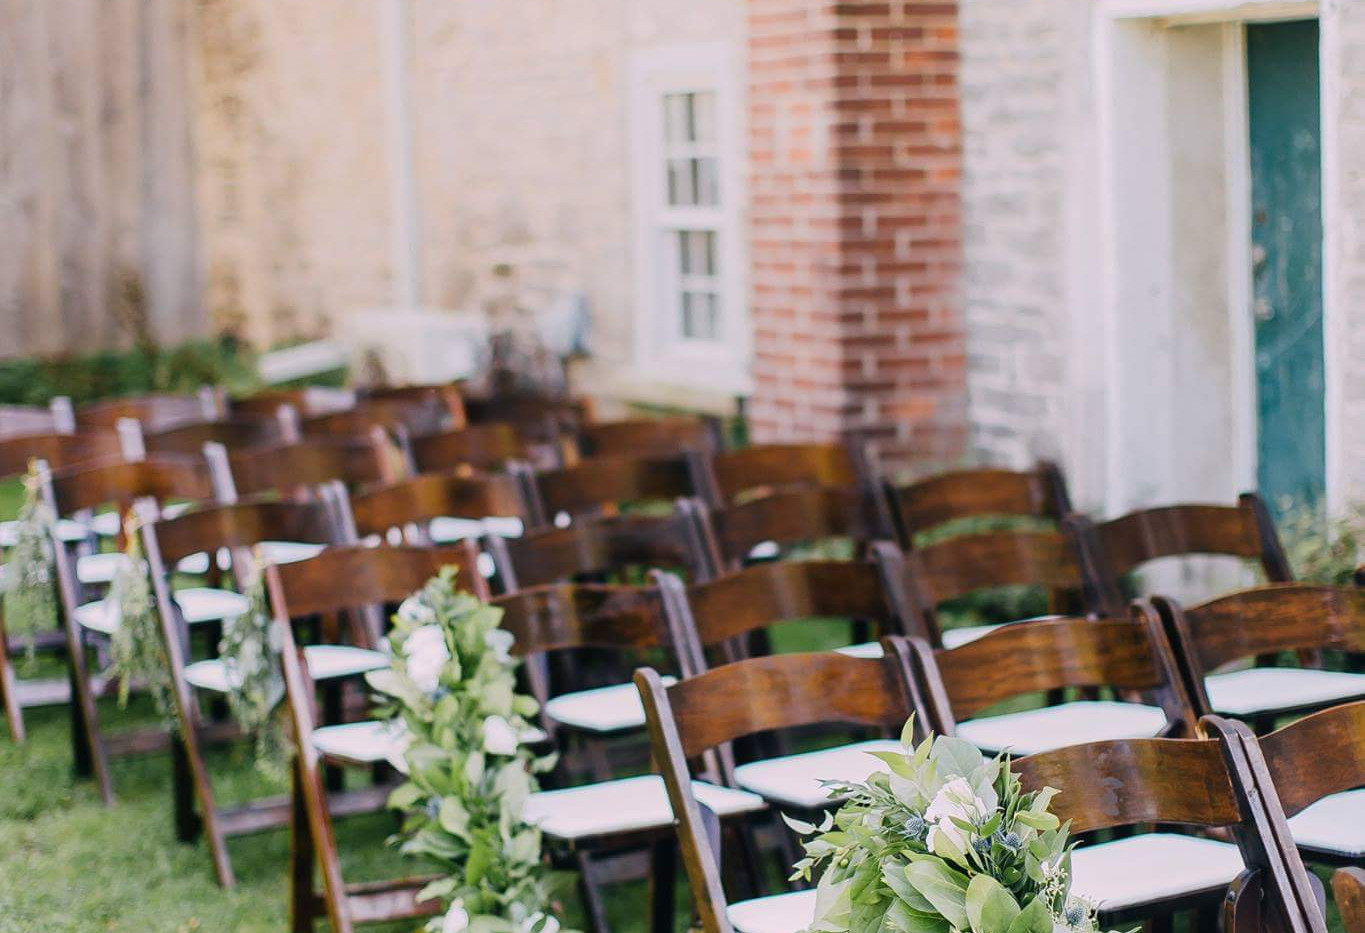 Espresso folding garden chairs at ceremony with floral and greenery garlands swagged along chairs